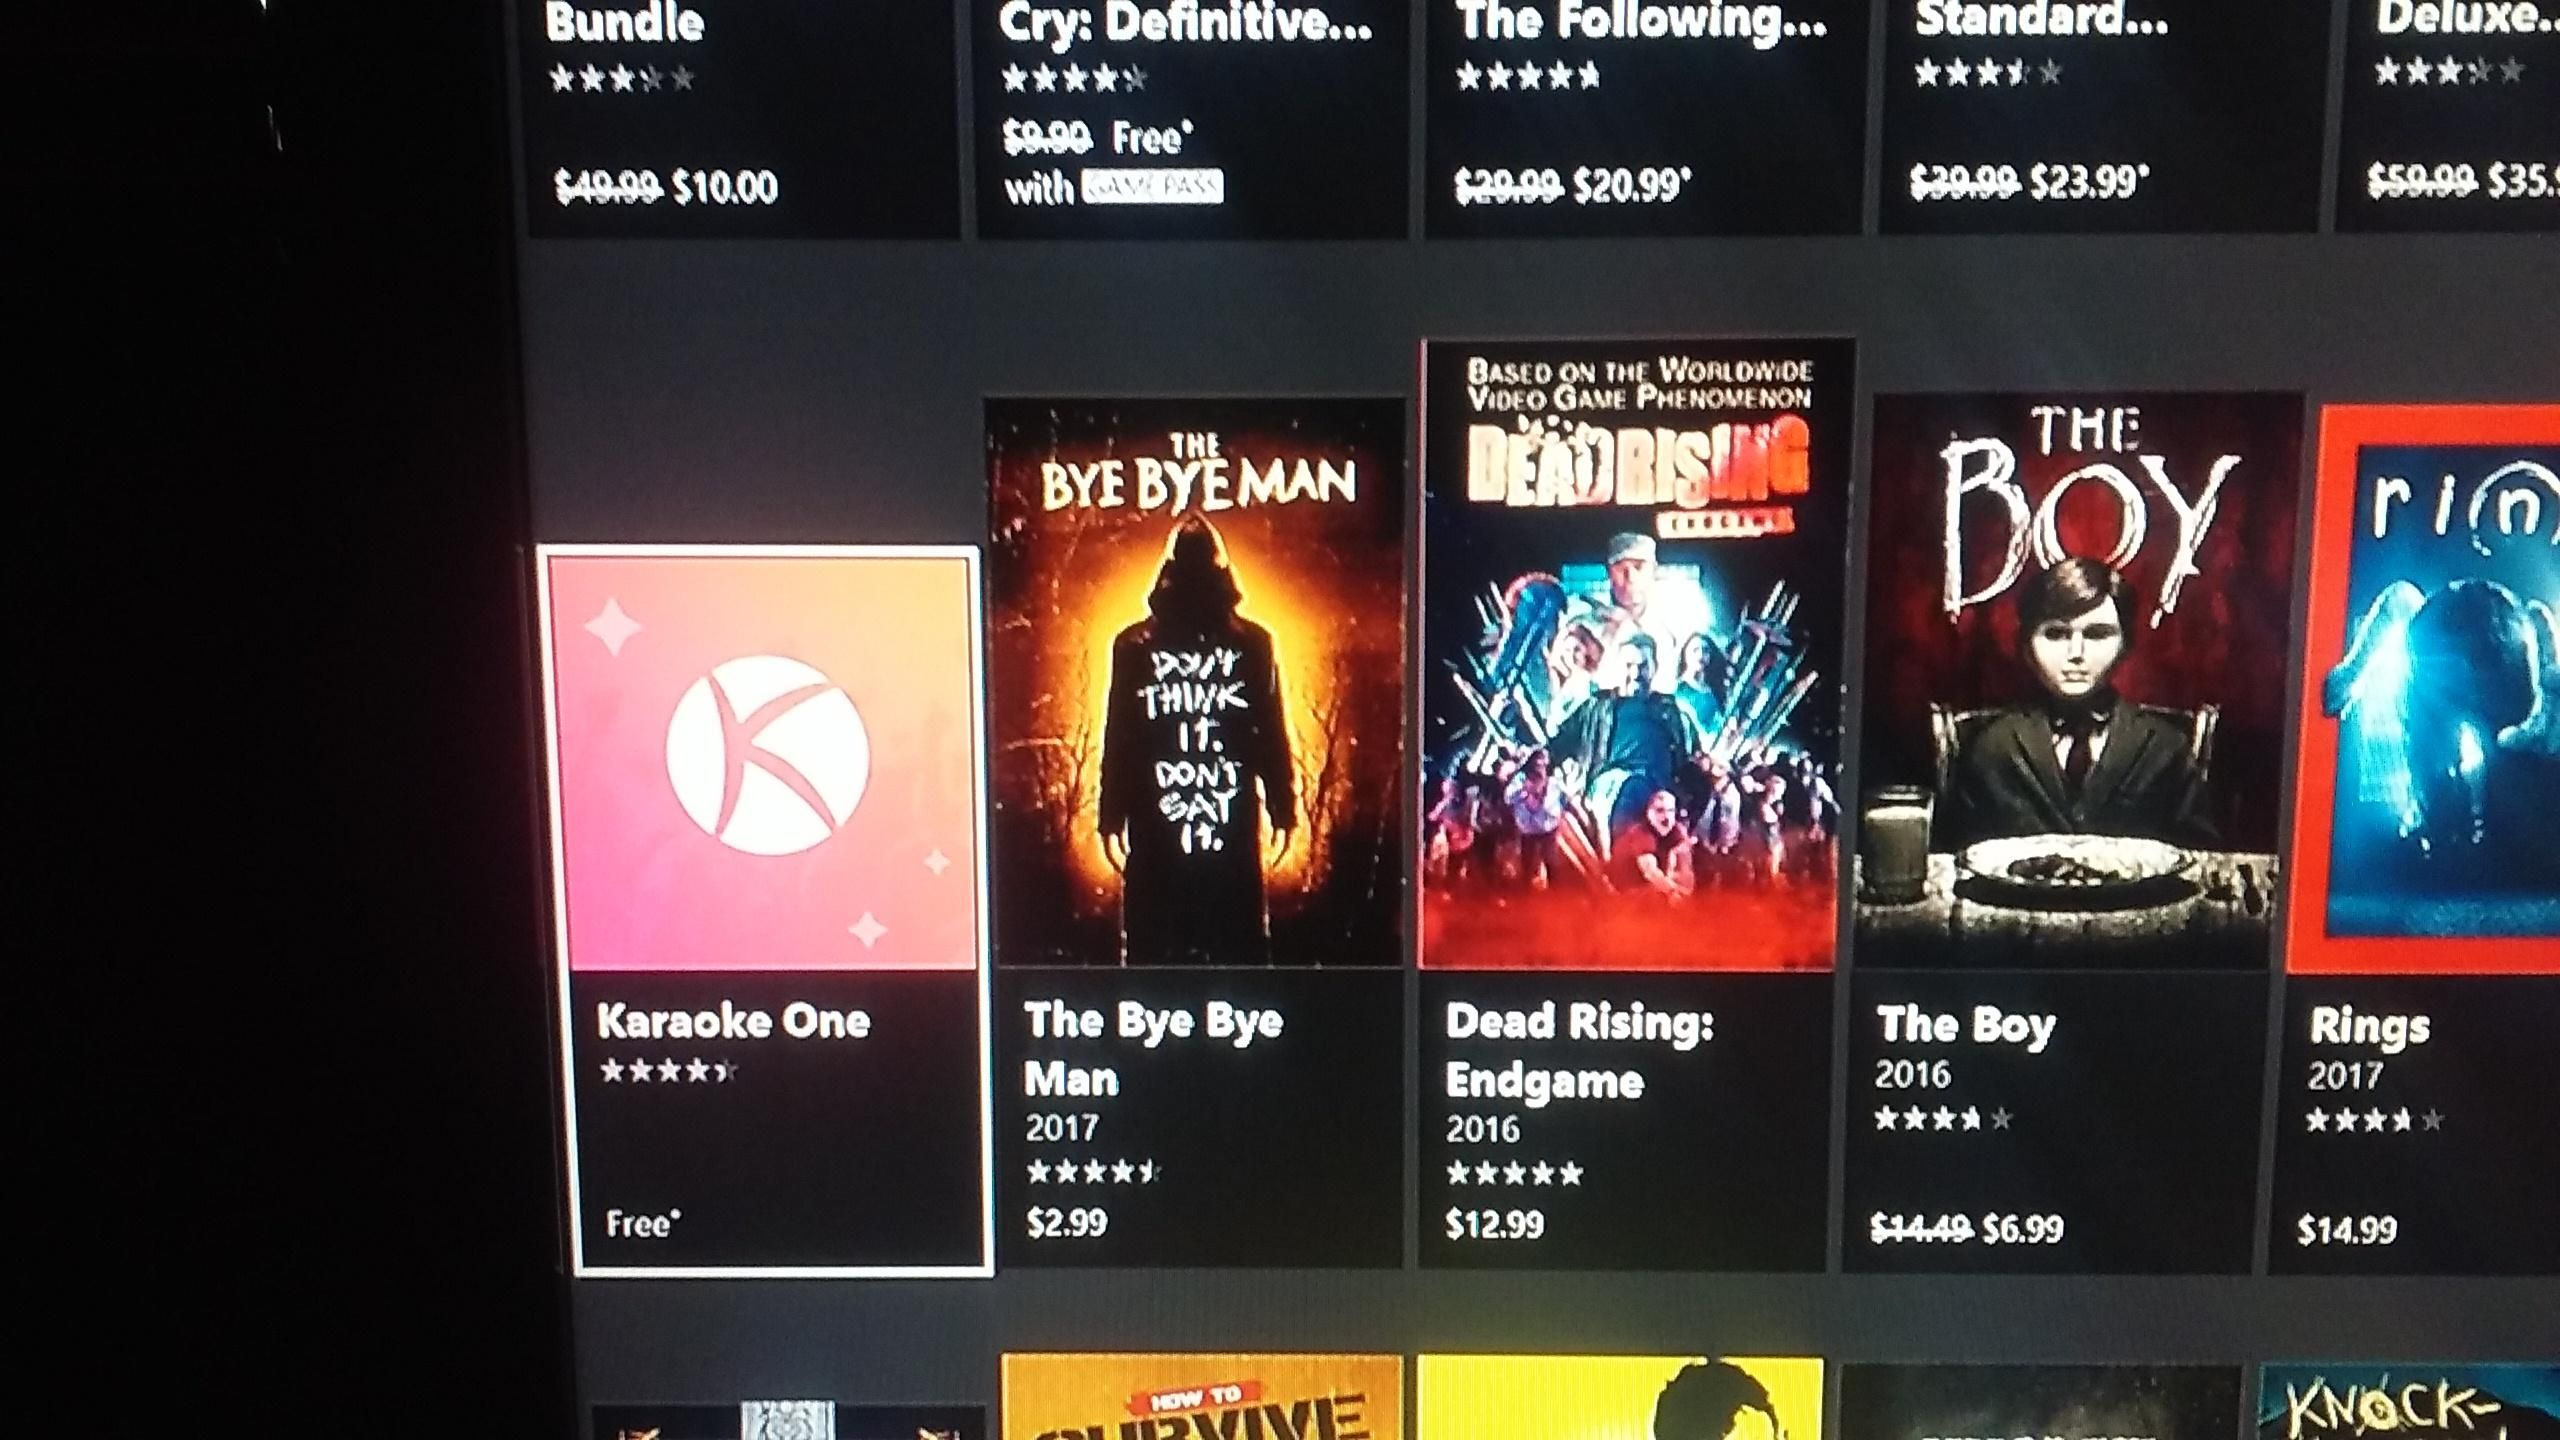 When you're looking through shocktober sales on Xbox and find karaoke as a spooky game.